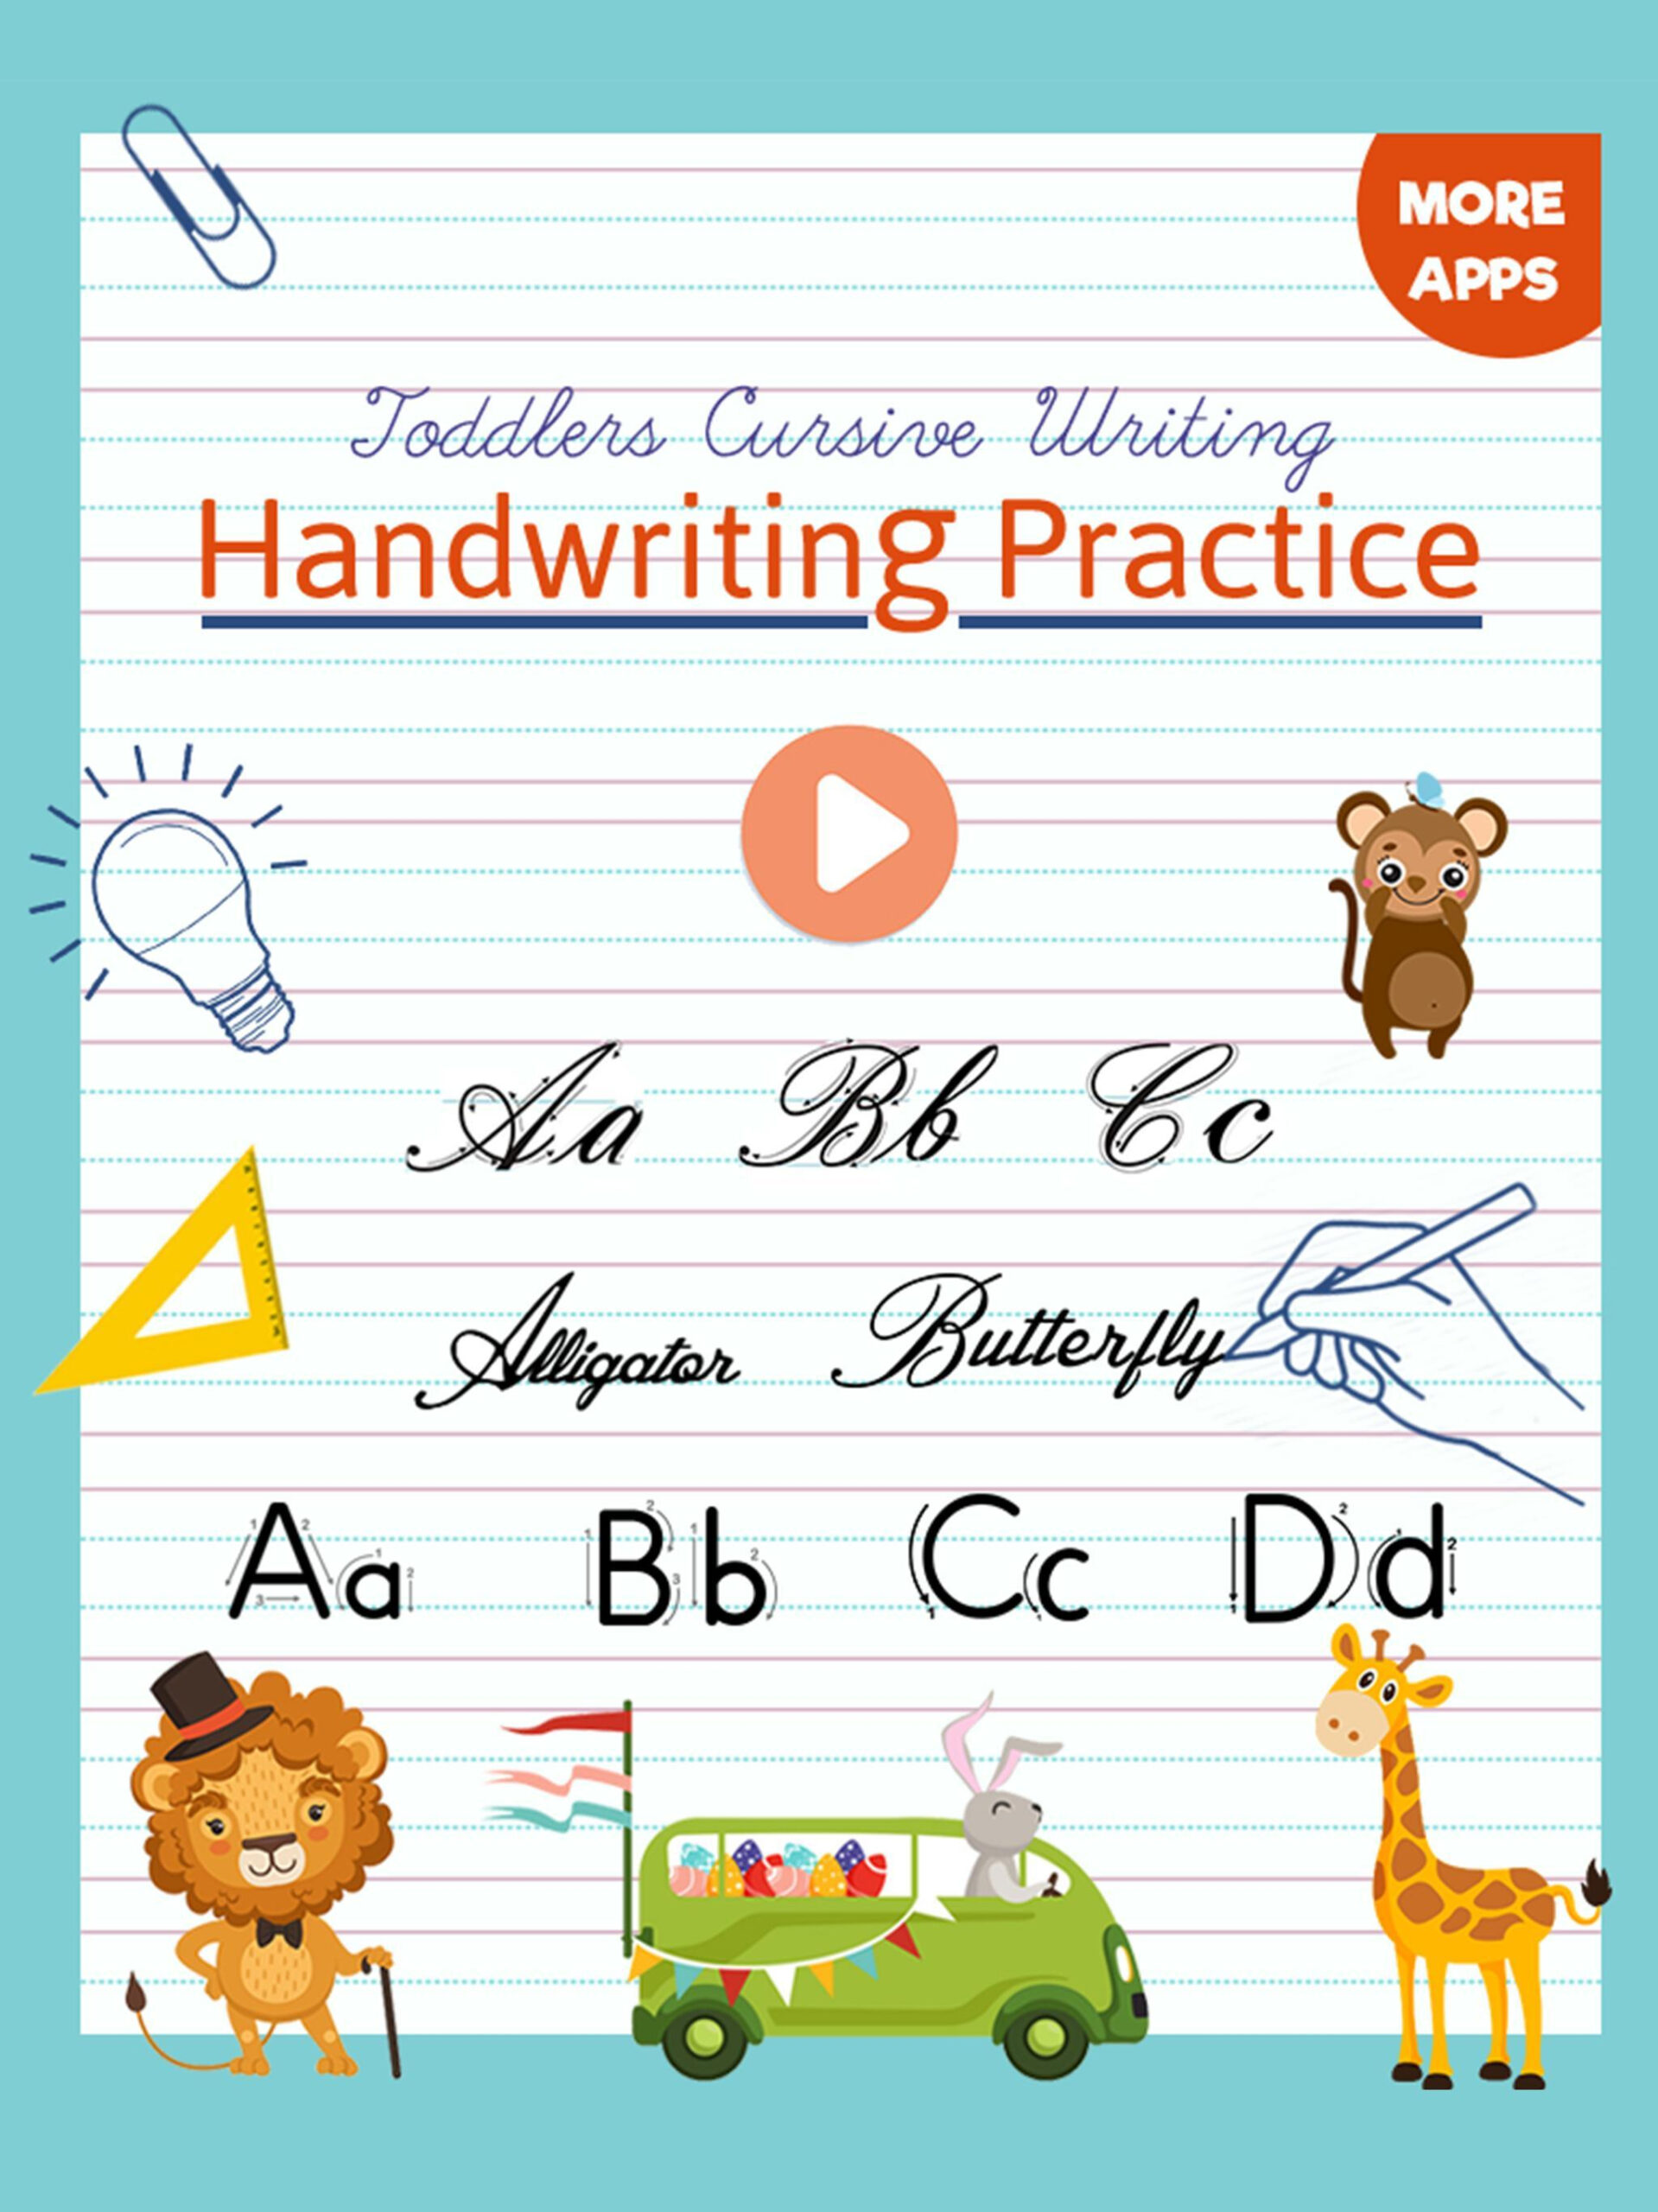 Kids Cursive Writing - Learn Cursive Handwriting For Android